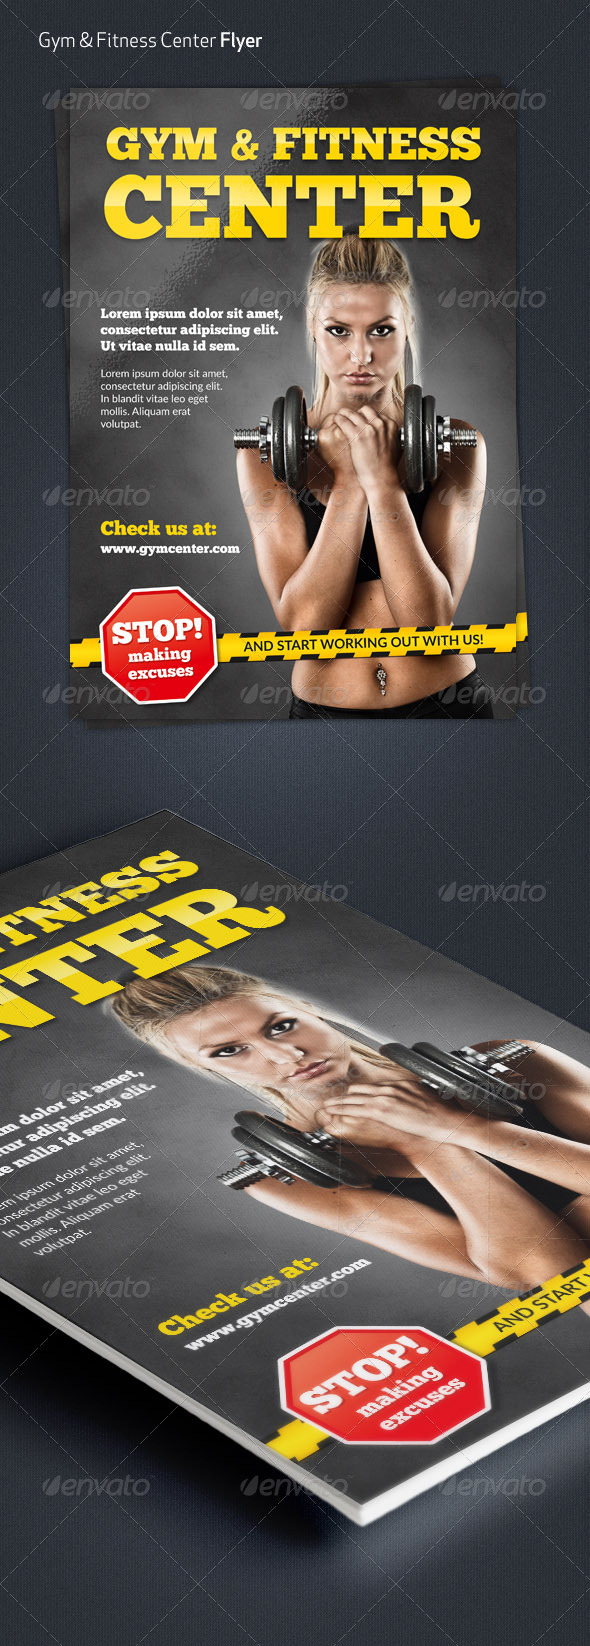 Gym & Fitness Center A4 Flyer